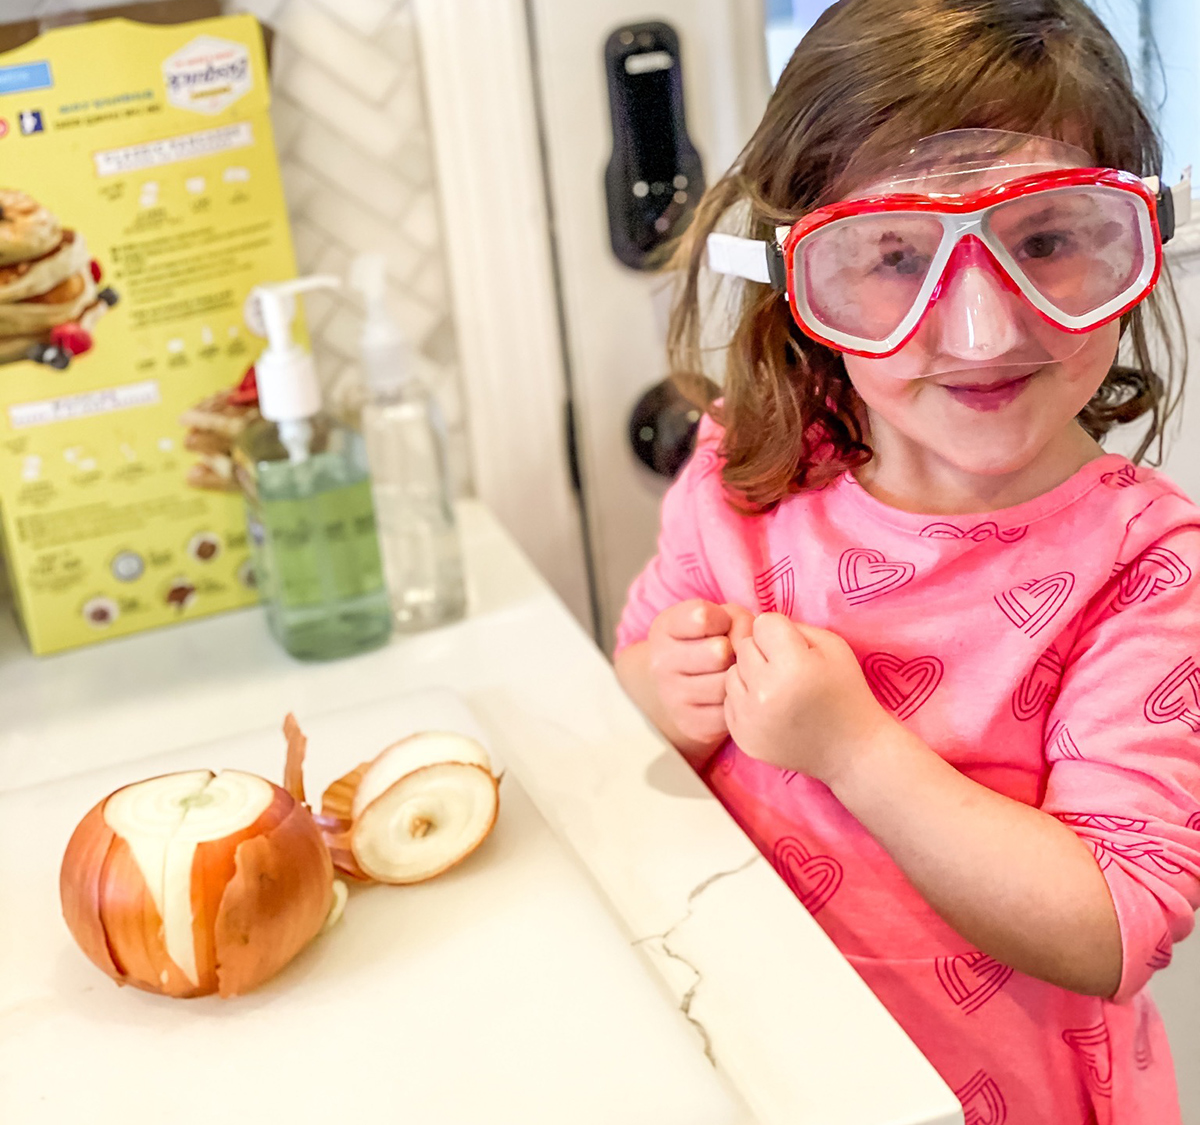 Young girl in goggles cuts up an onion in the kitchen.